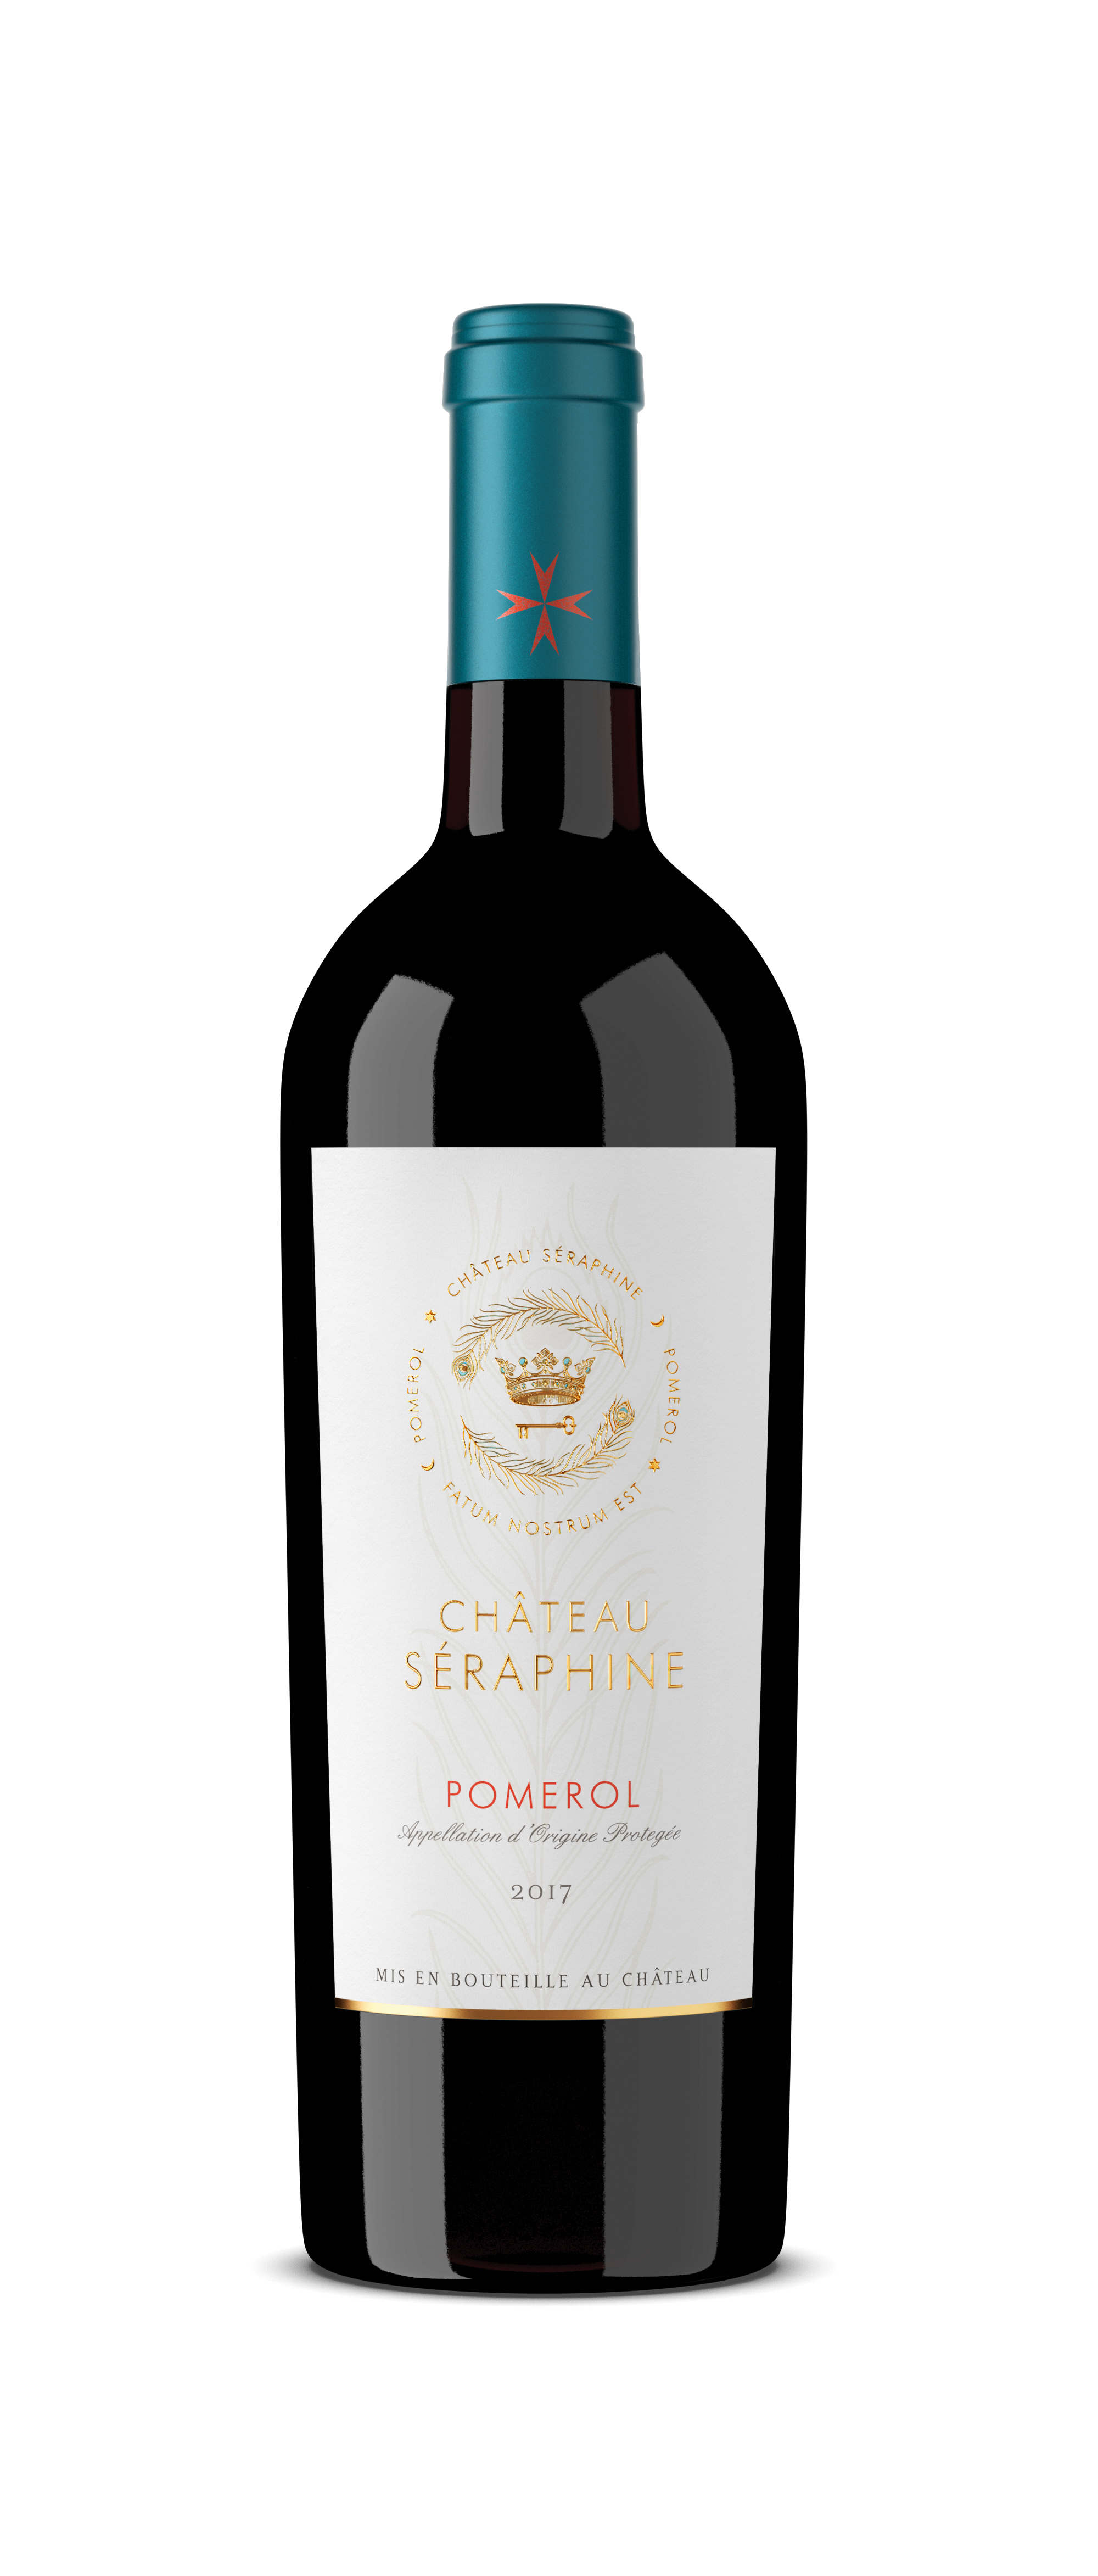 OUTSHINERY-BDcreative-ChateauSeraphine-Pomerol 3.jpg